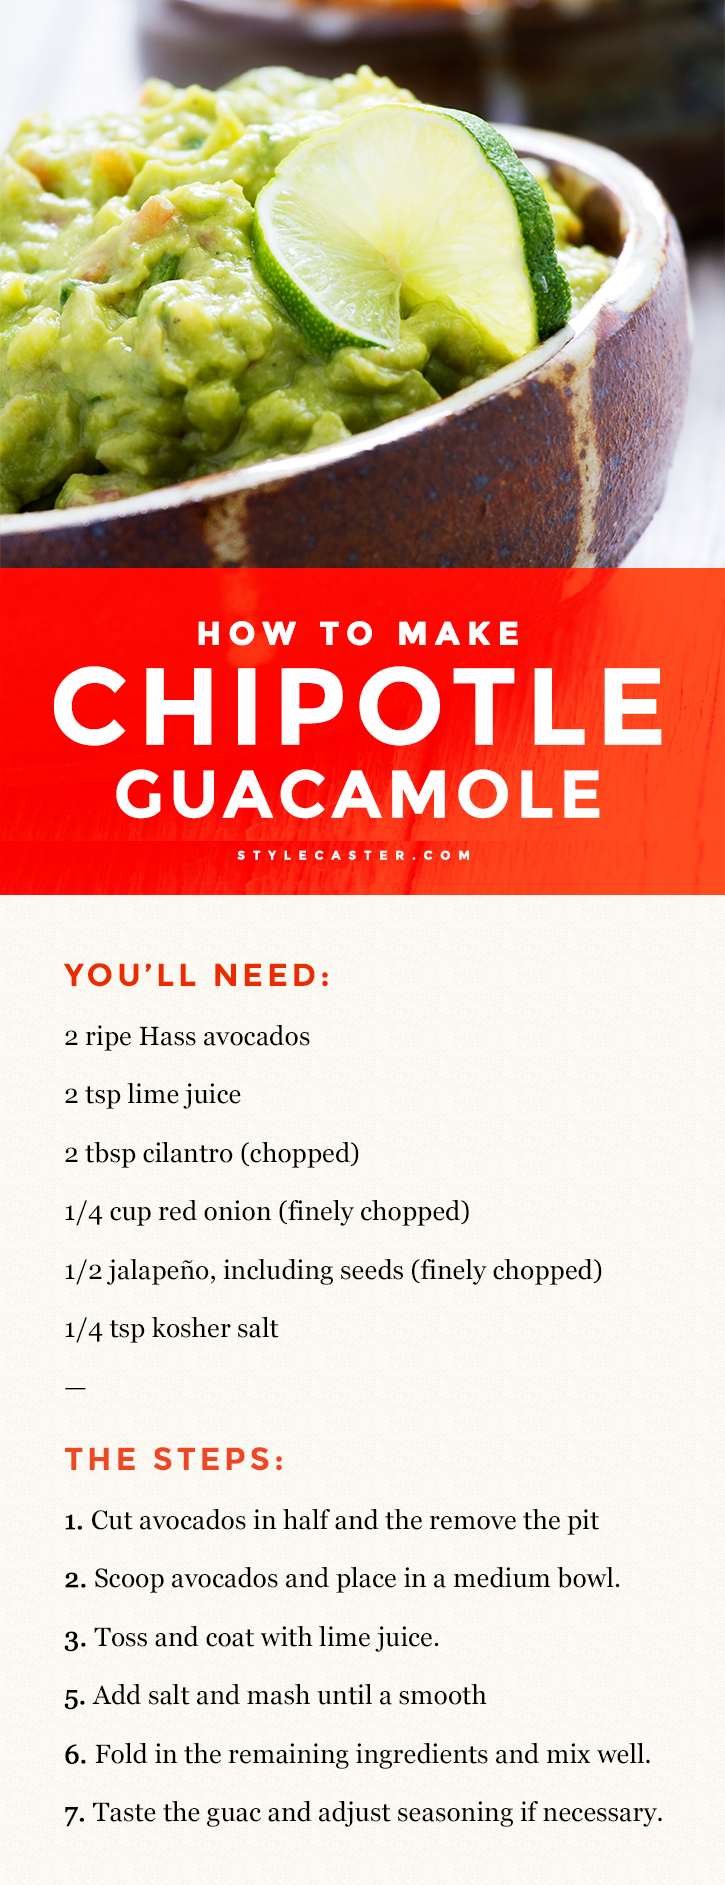 Chipotle Revealed Its Exact Guacamole Recipe, People!